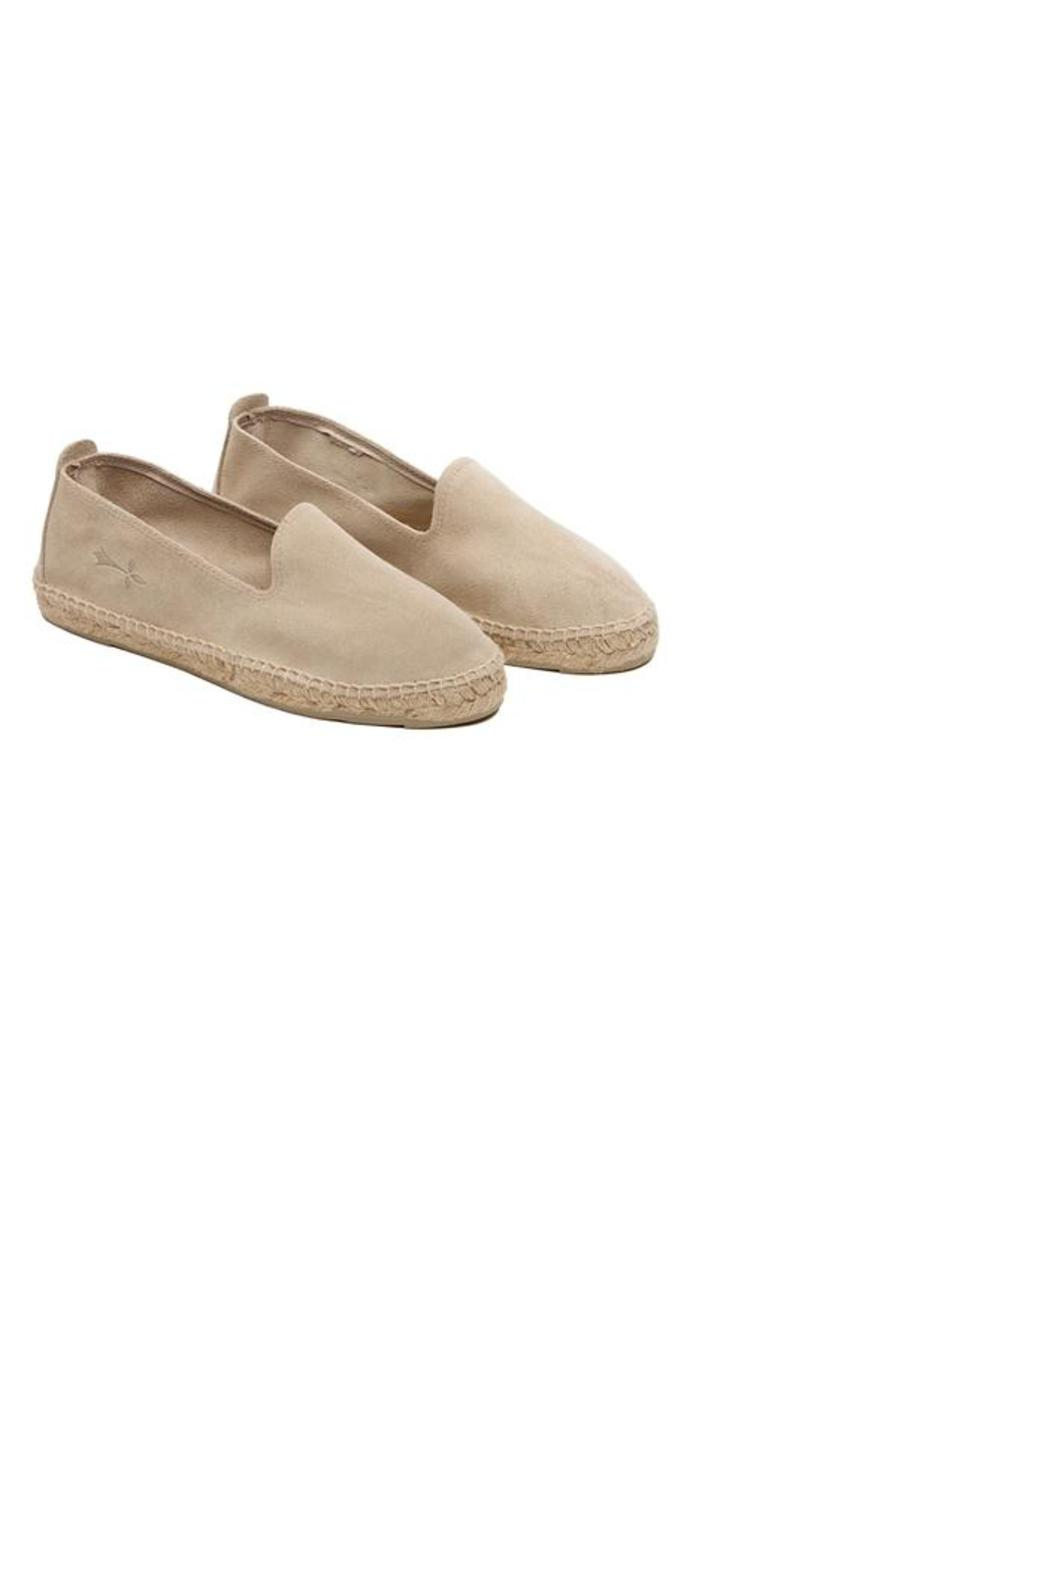 efe83c0643dc Manebi Hamptons Suede Espadrille from Pennsylvania by Jasmin ...